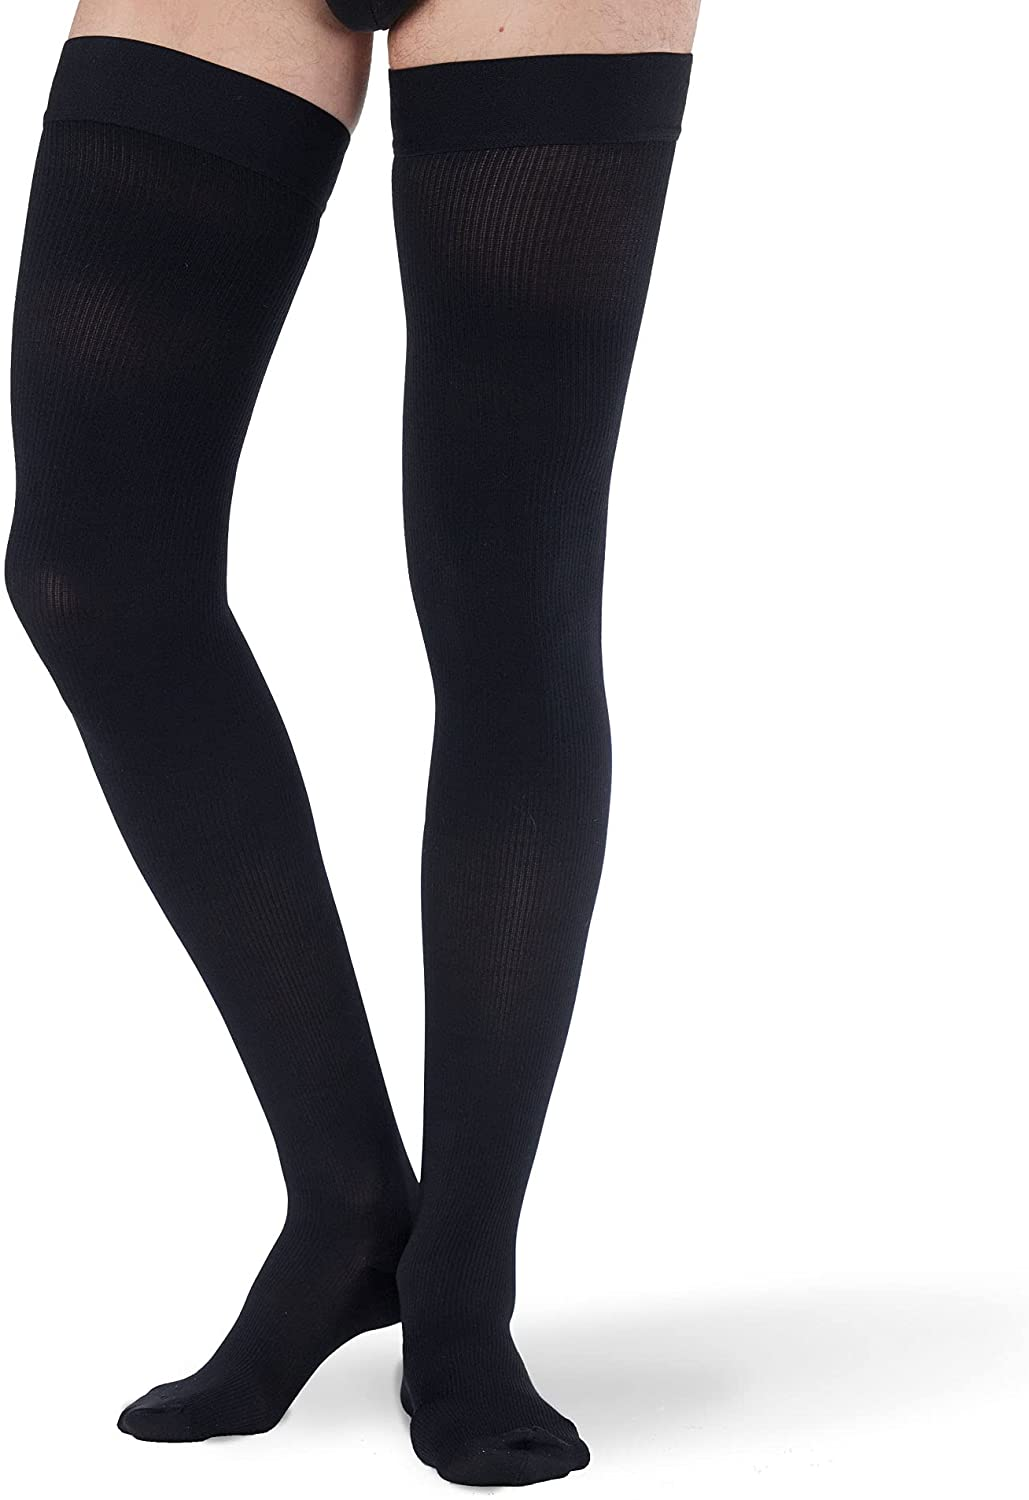 Mens Winter Warm Compression Socks Stretchy Thick Hosiery Sports Long Stockings